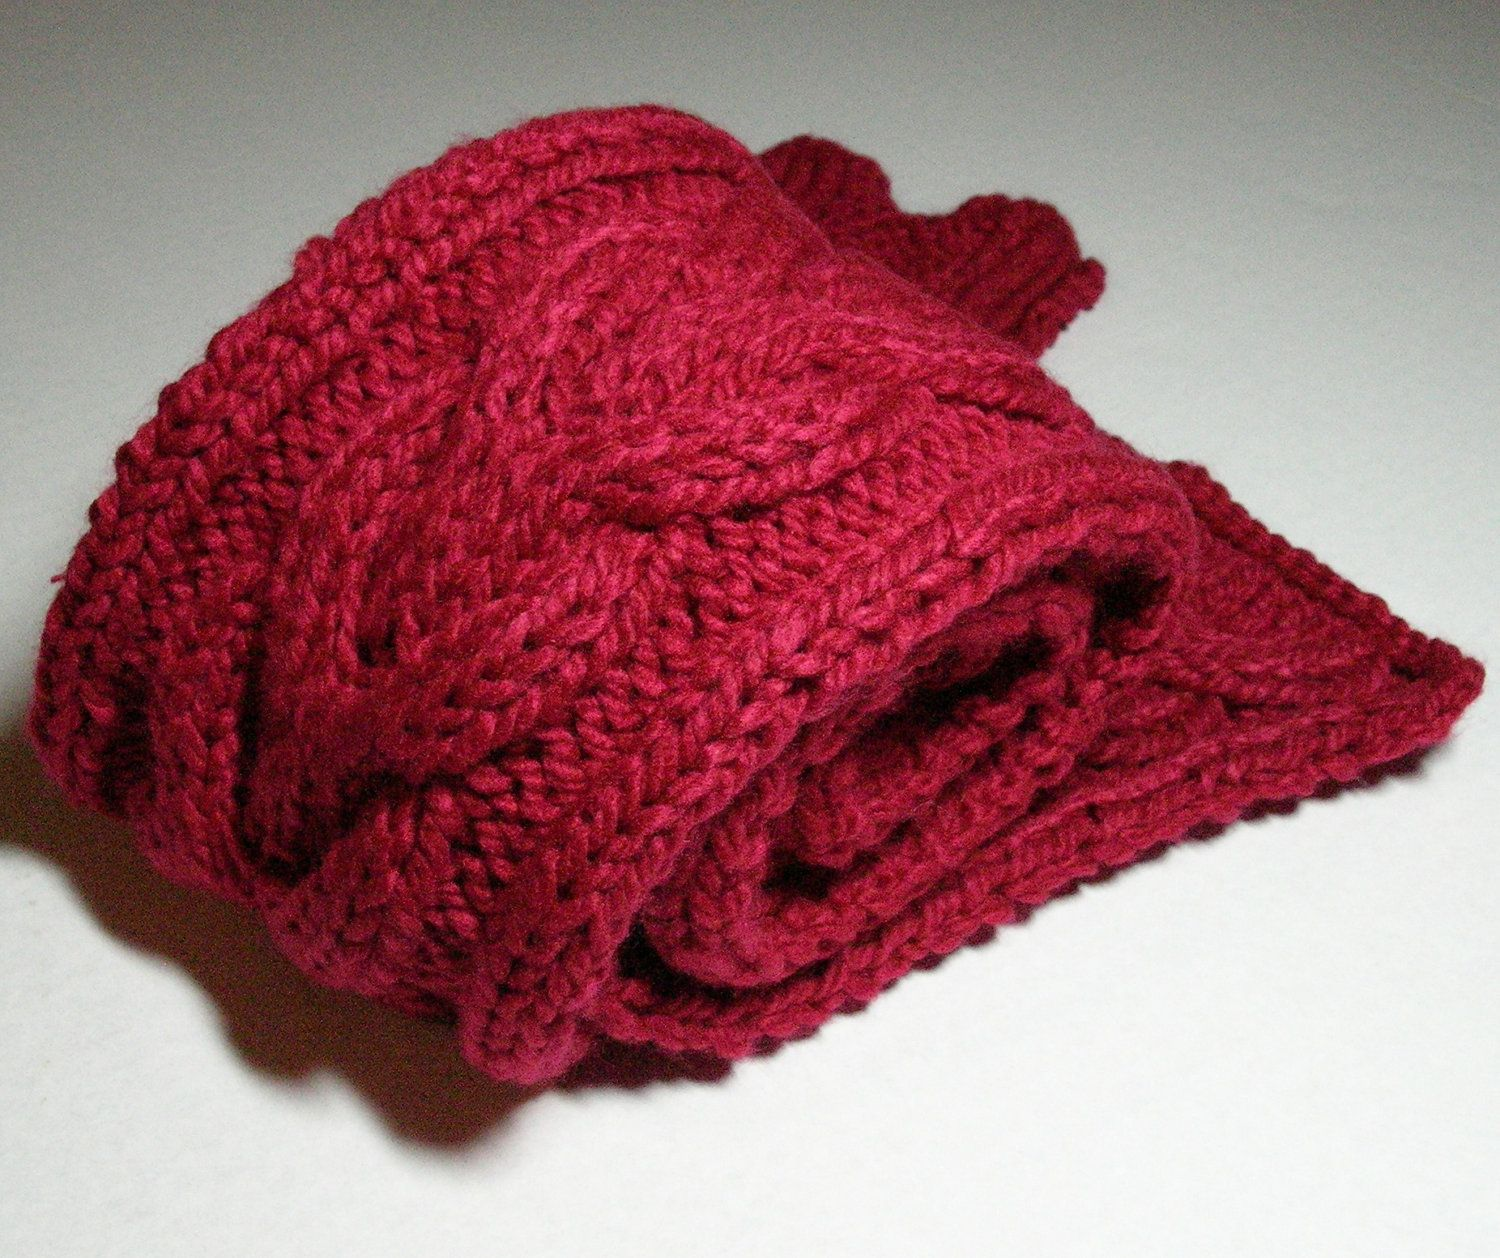 Cranberry red cable scarf hand knit horseshoe cable 3000 via cranberry red cable scarf hand knit horseshoe cable 3000 via etsy bankloansurffo Image collections